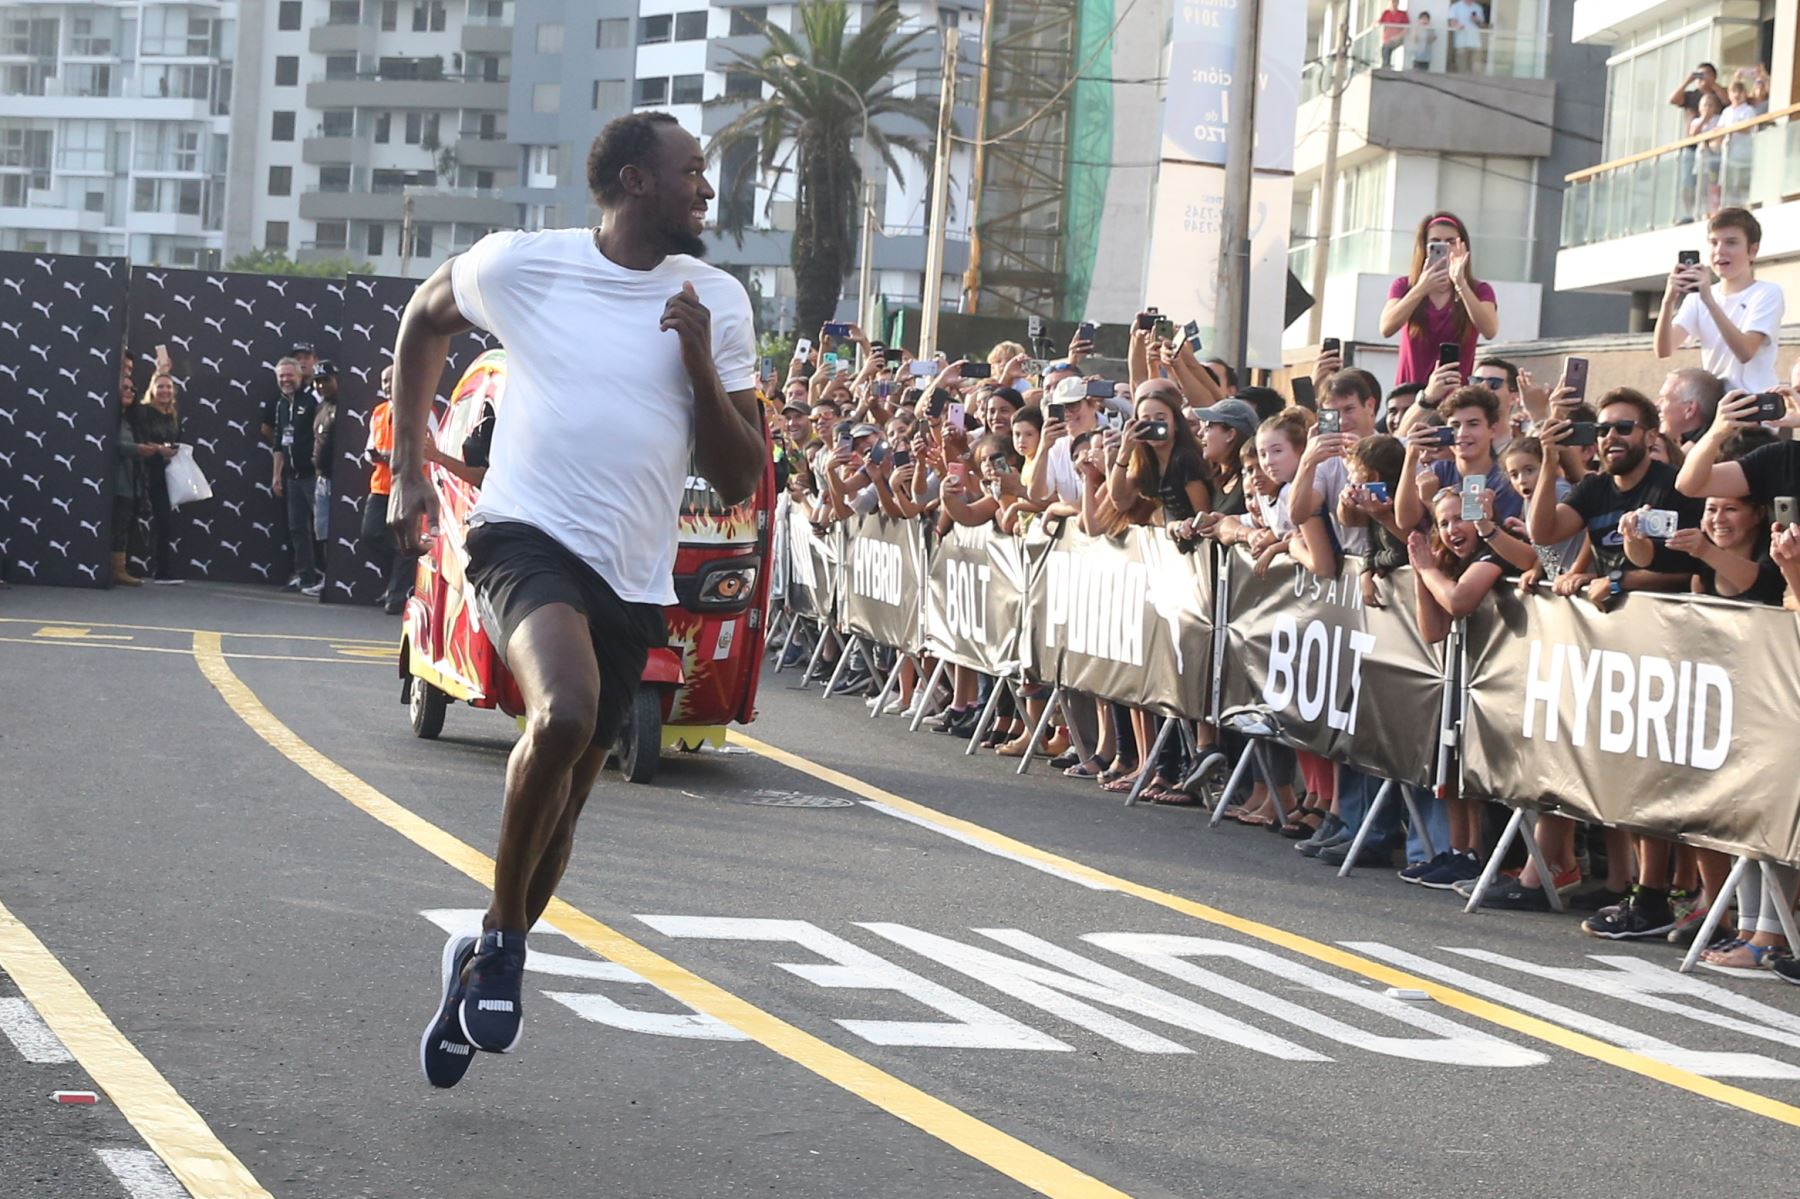 Gold medalist Bolt runs in Peru, beats a mototaxi